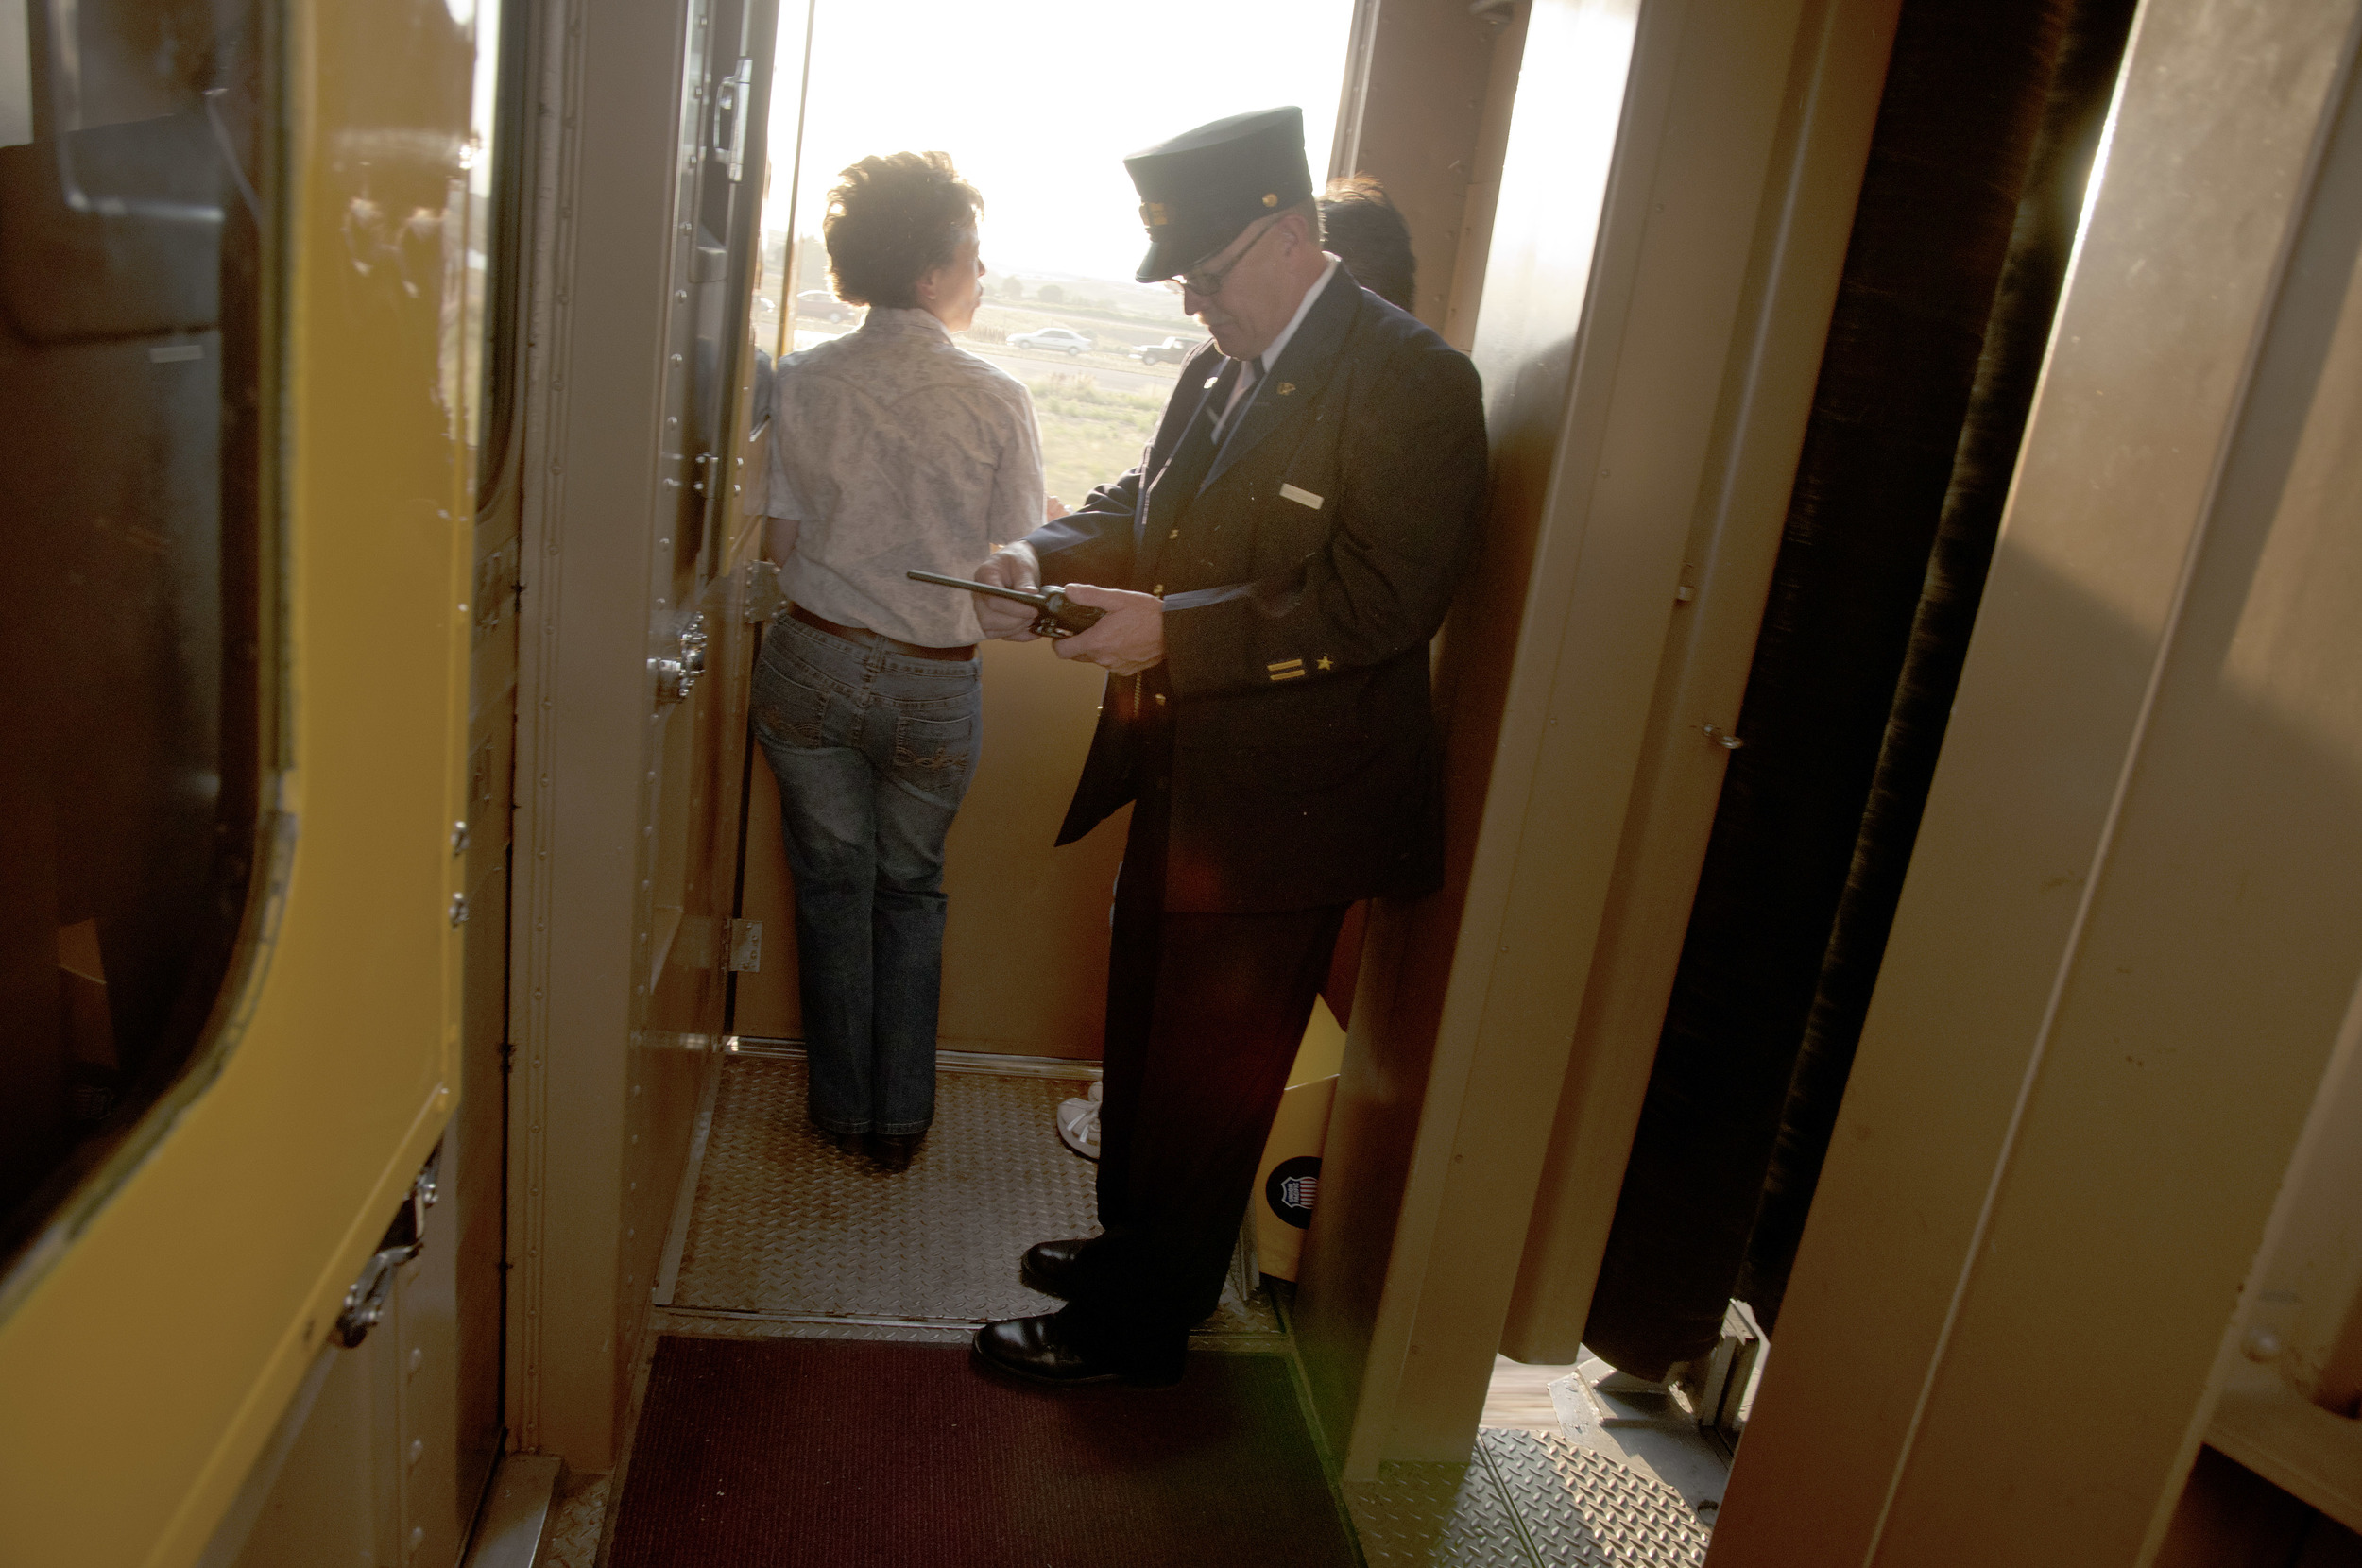 A Union Pacific conductor checks his radio momentarily in the vestibule aboard the Denver Post's Cheyenne Frontier Days passenger special train as it chugs across northern Colorado. The vintage carriages were brought in specially for this run, and date from the era of steam trains.